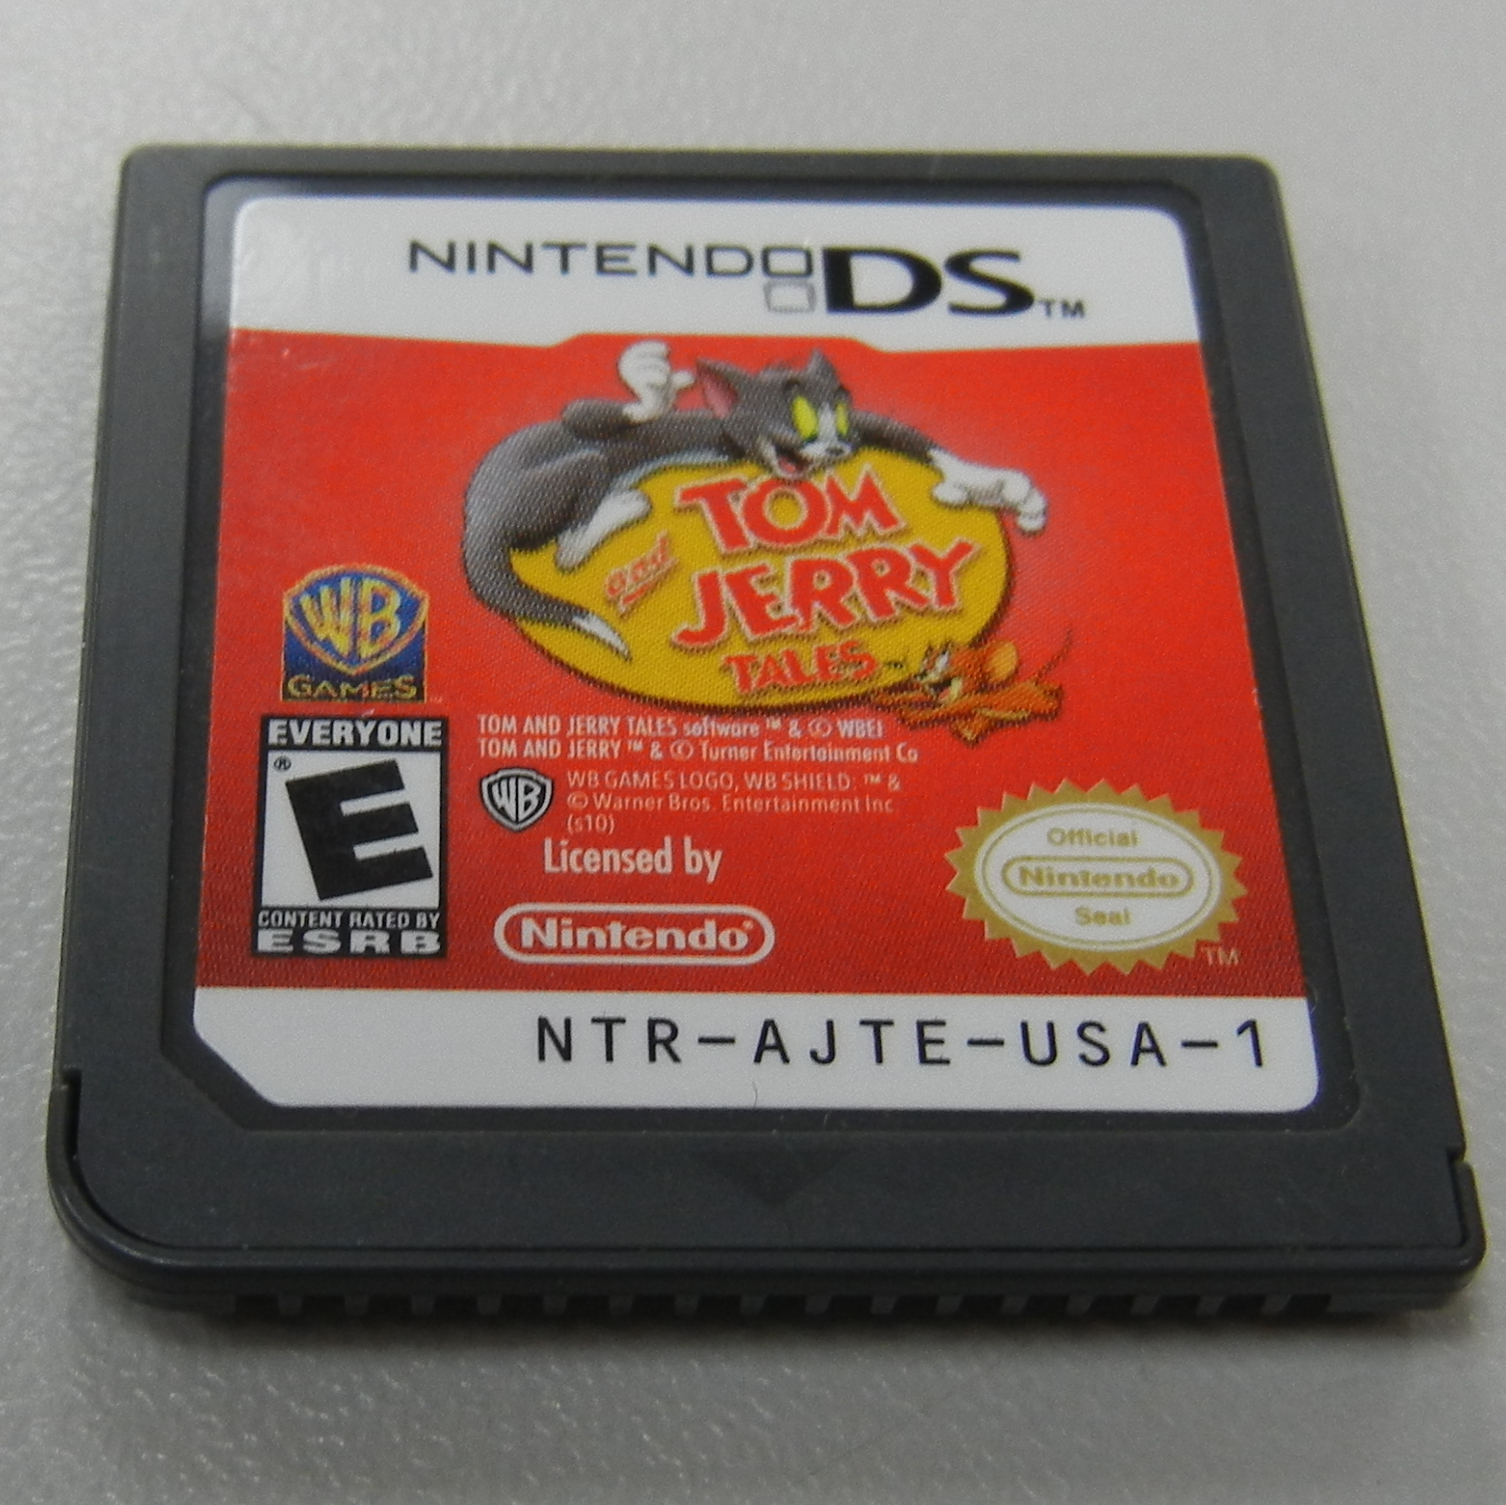 TOM & JERRY TALES NINTENDO DS GAME